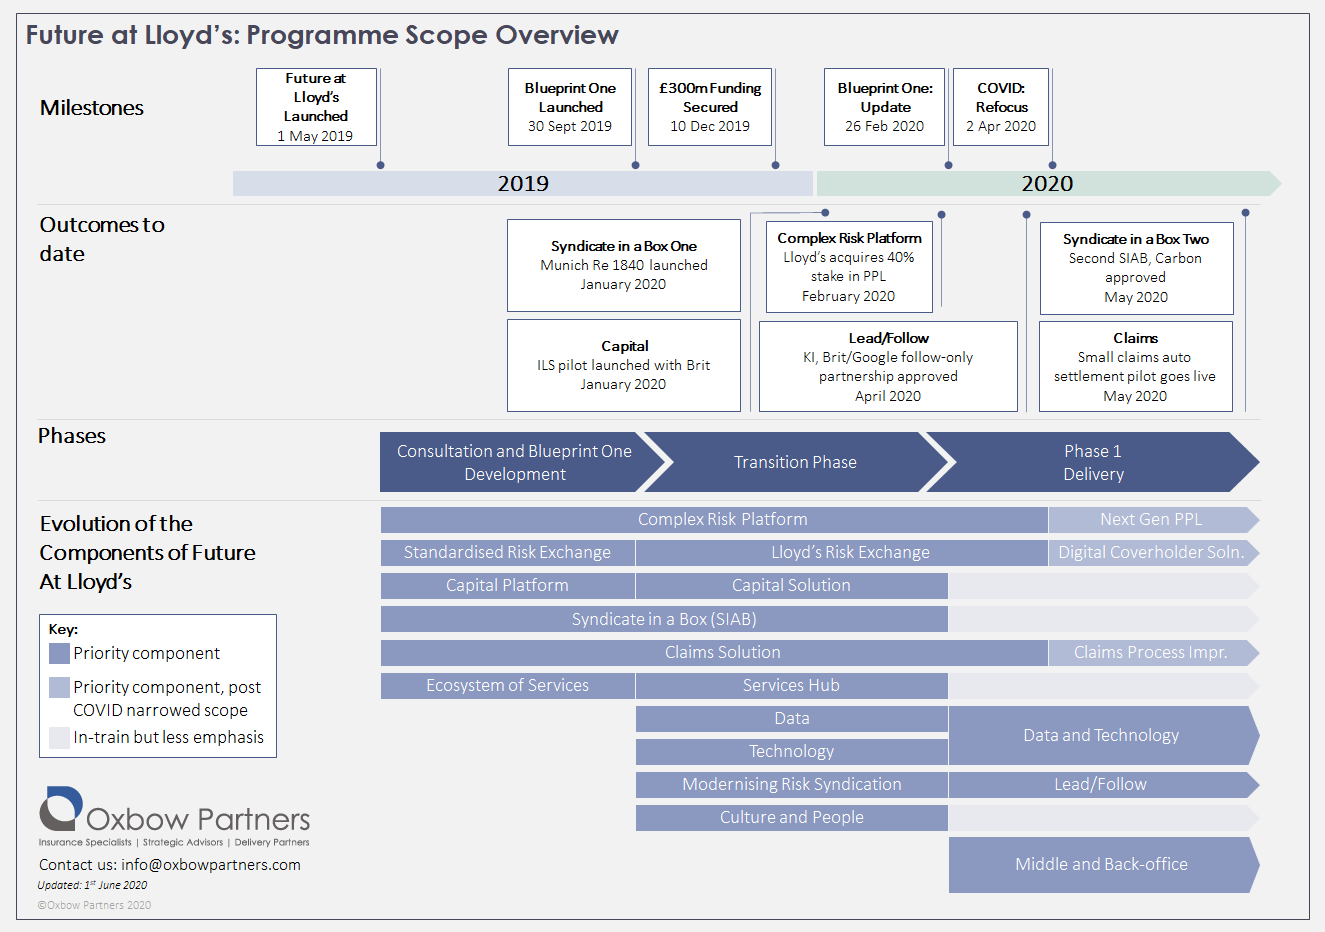 Oxbow Partners Future at Lloyd's : Programme Scope Overview Infographic